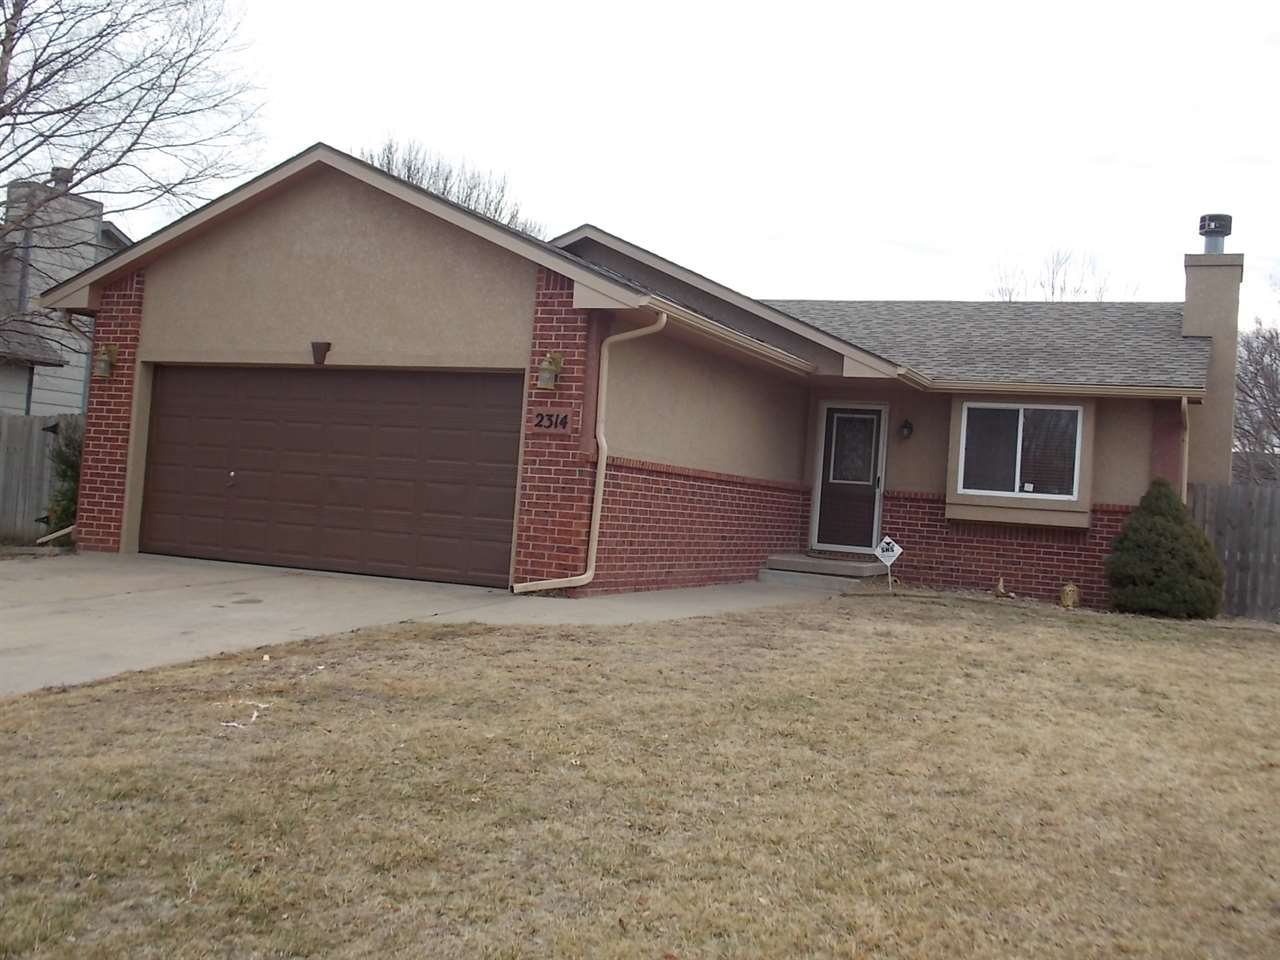 BEAUTIFUL RANCH HOME WITH 3 BEDROOMS 2 BATHS, GREAT NEIGHBORHOOD AND LOCATED IN GODDARD SCHOOLS DIST